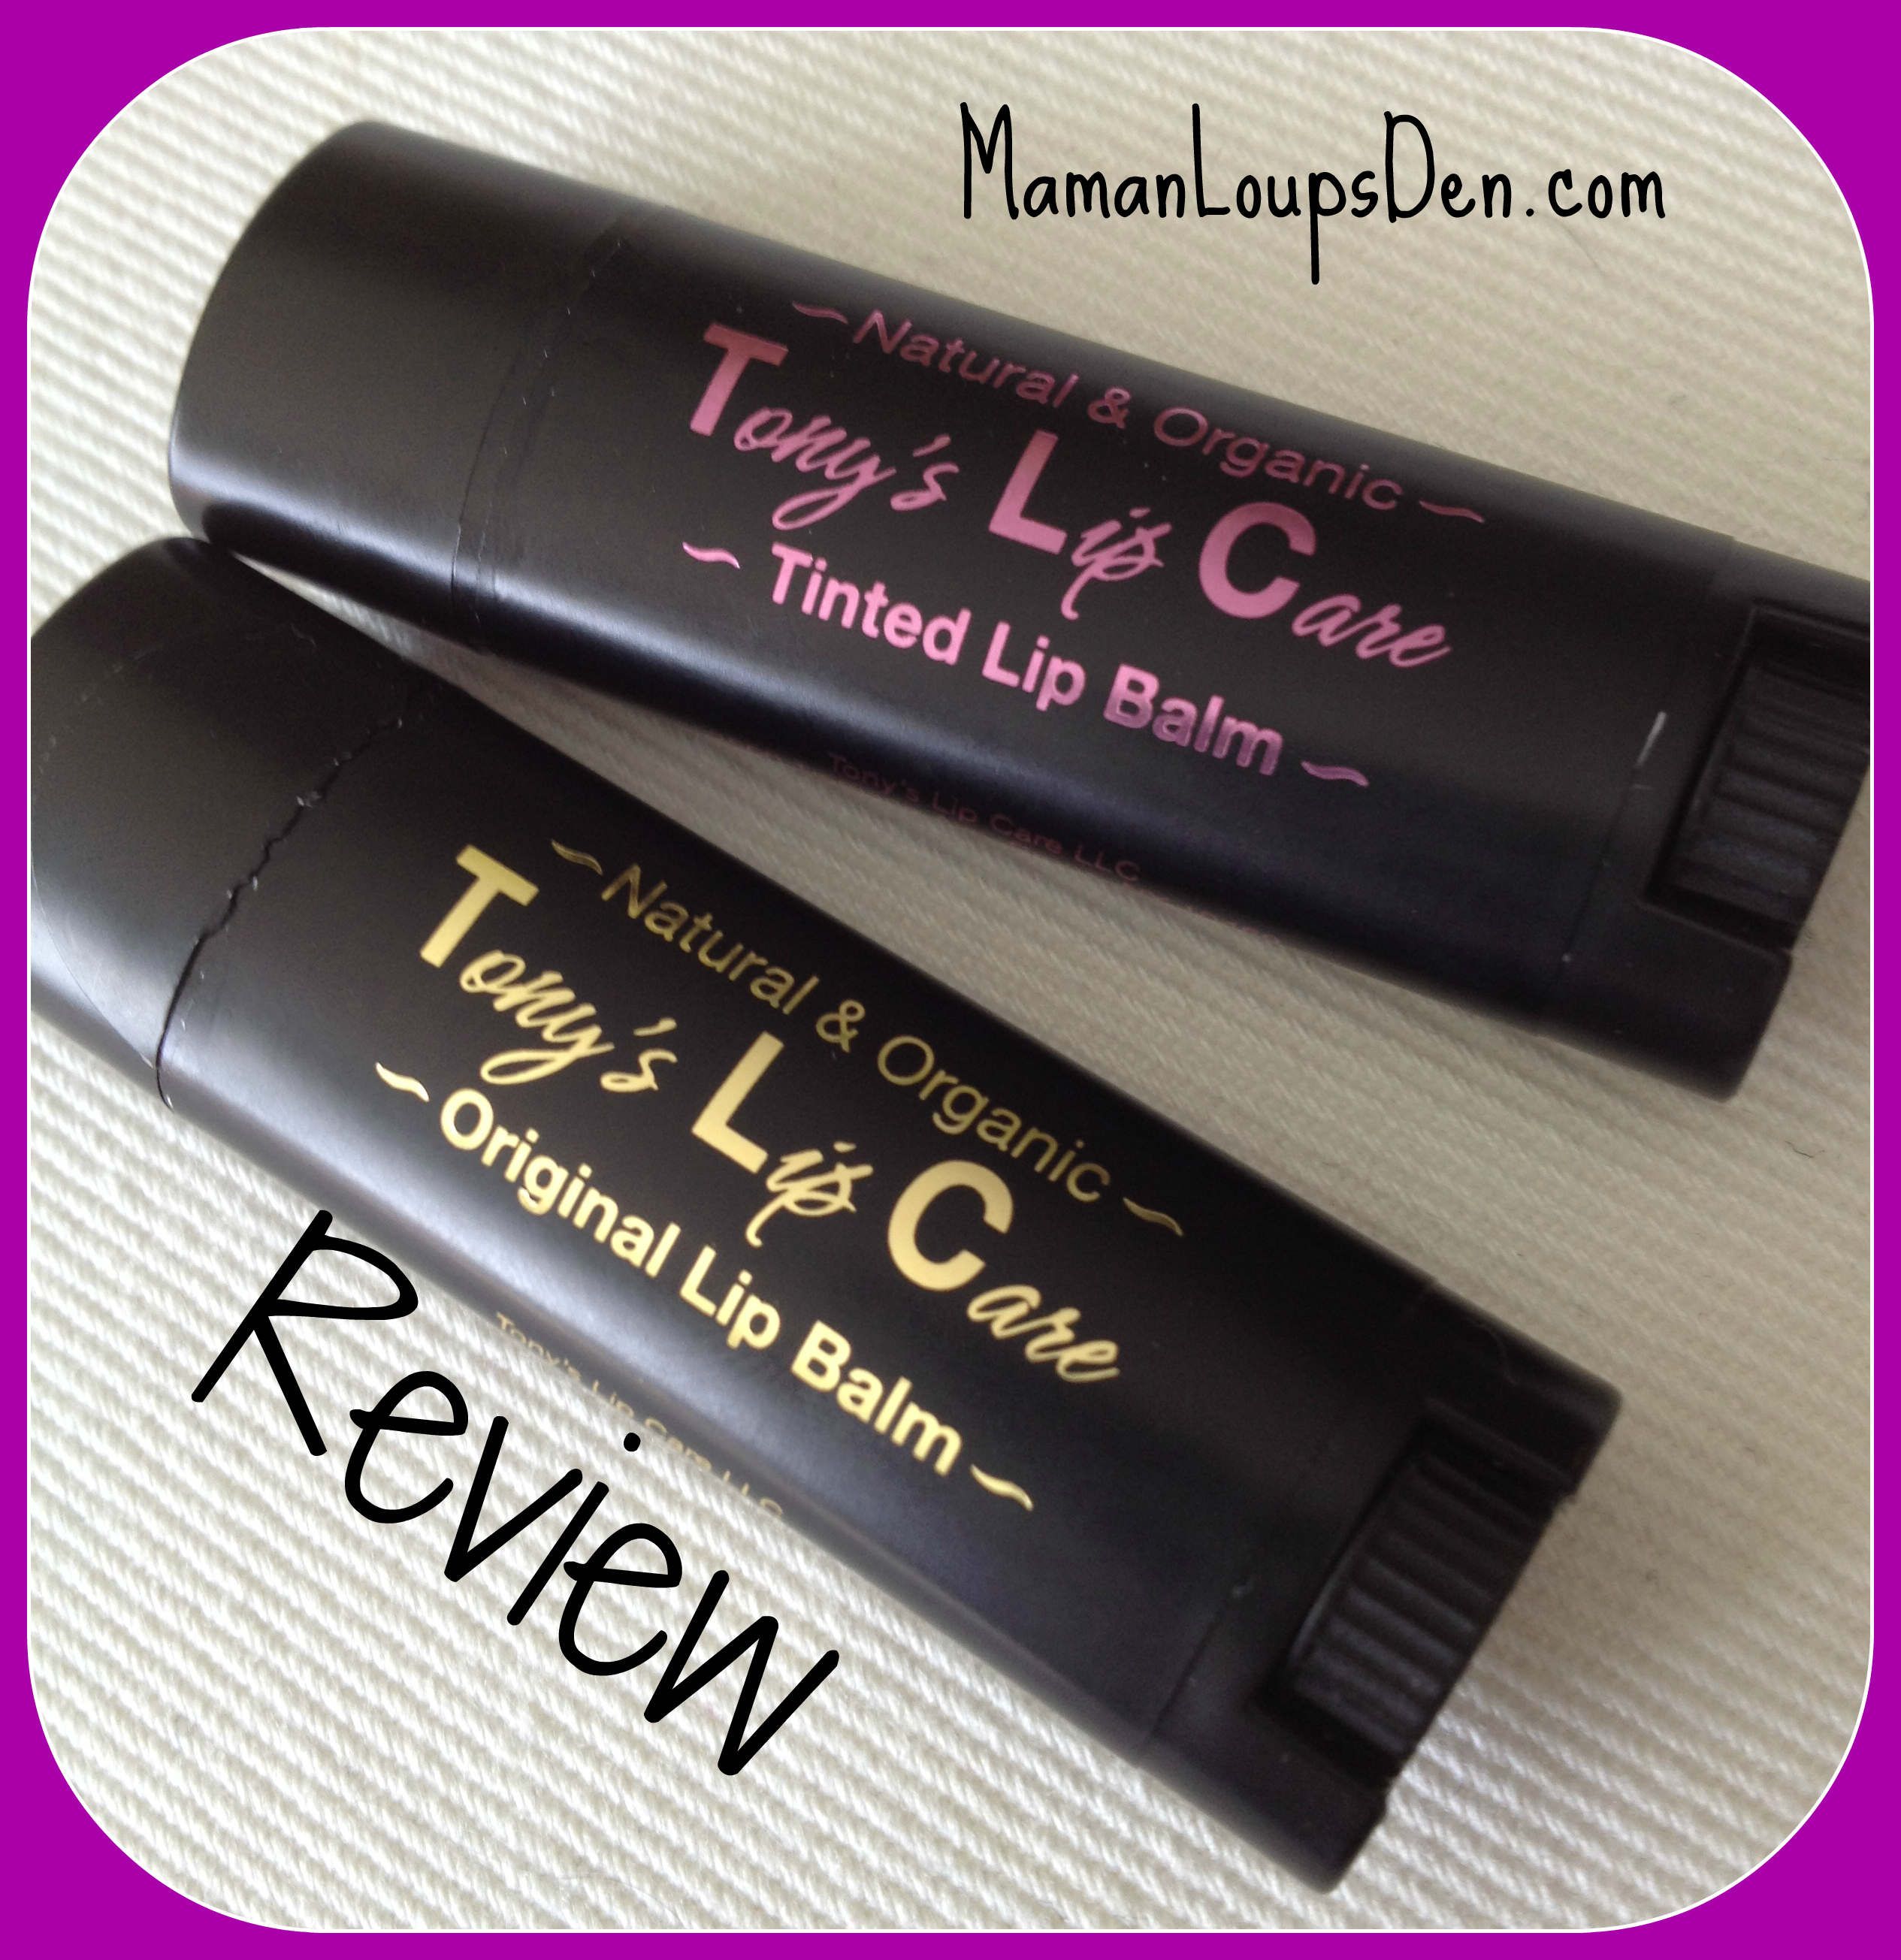 Tony's Lip Care Review